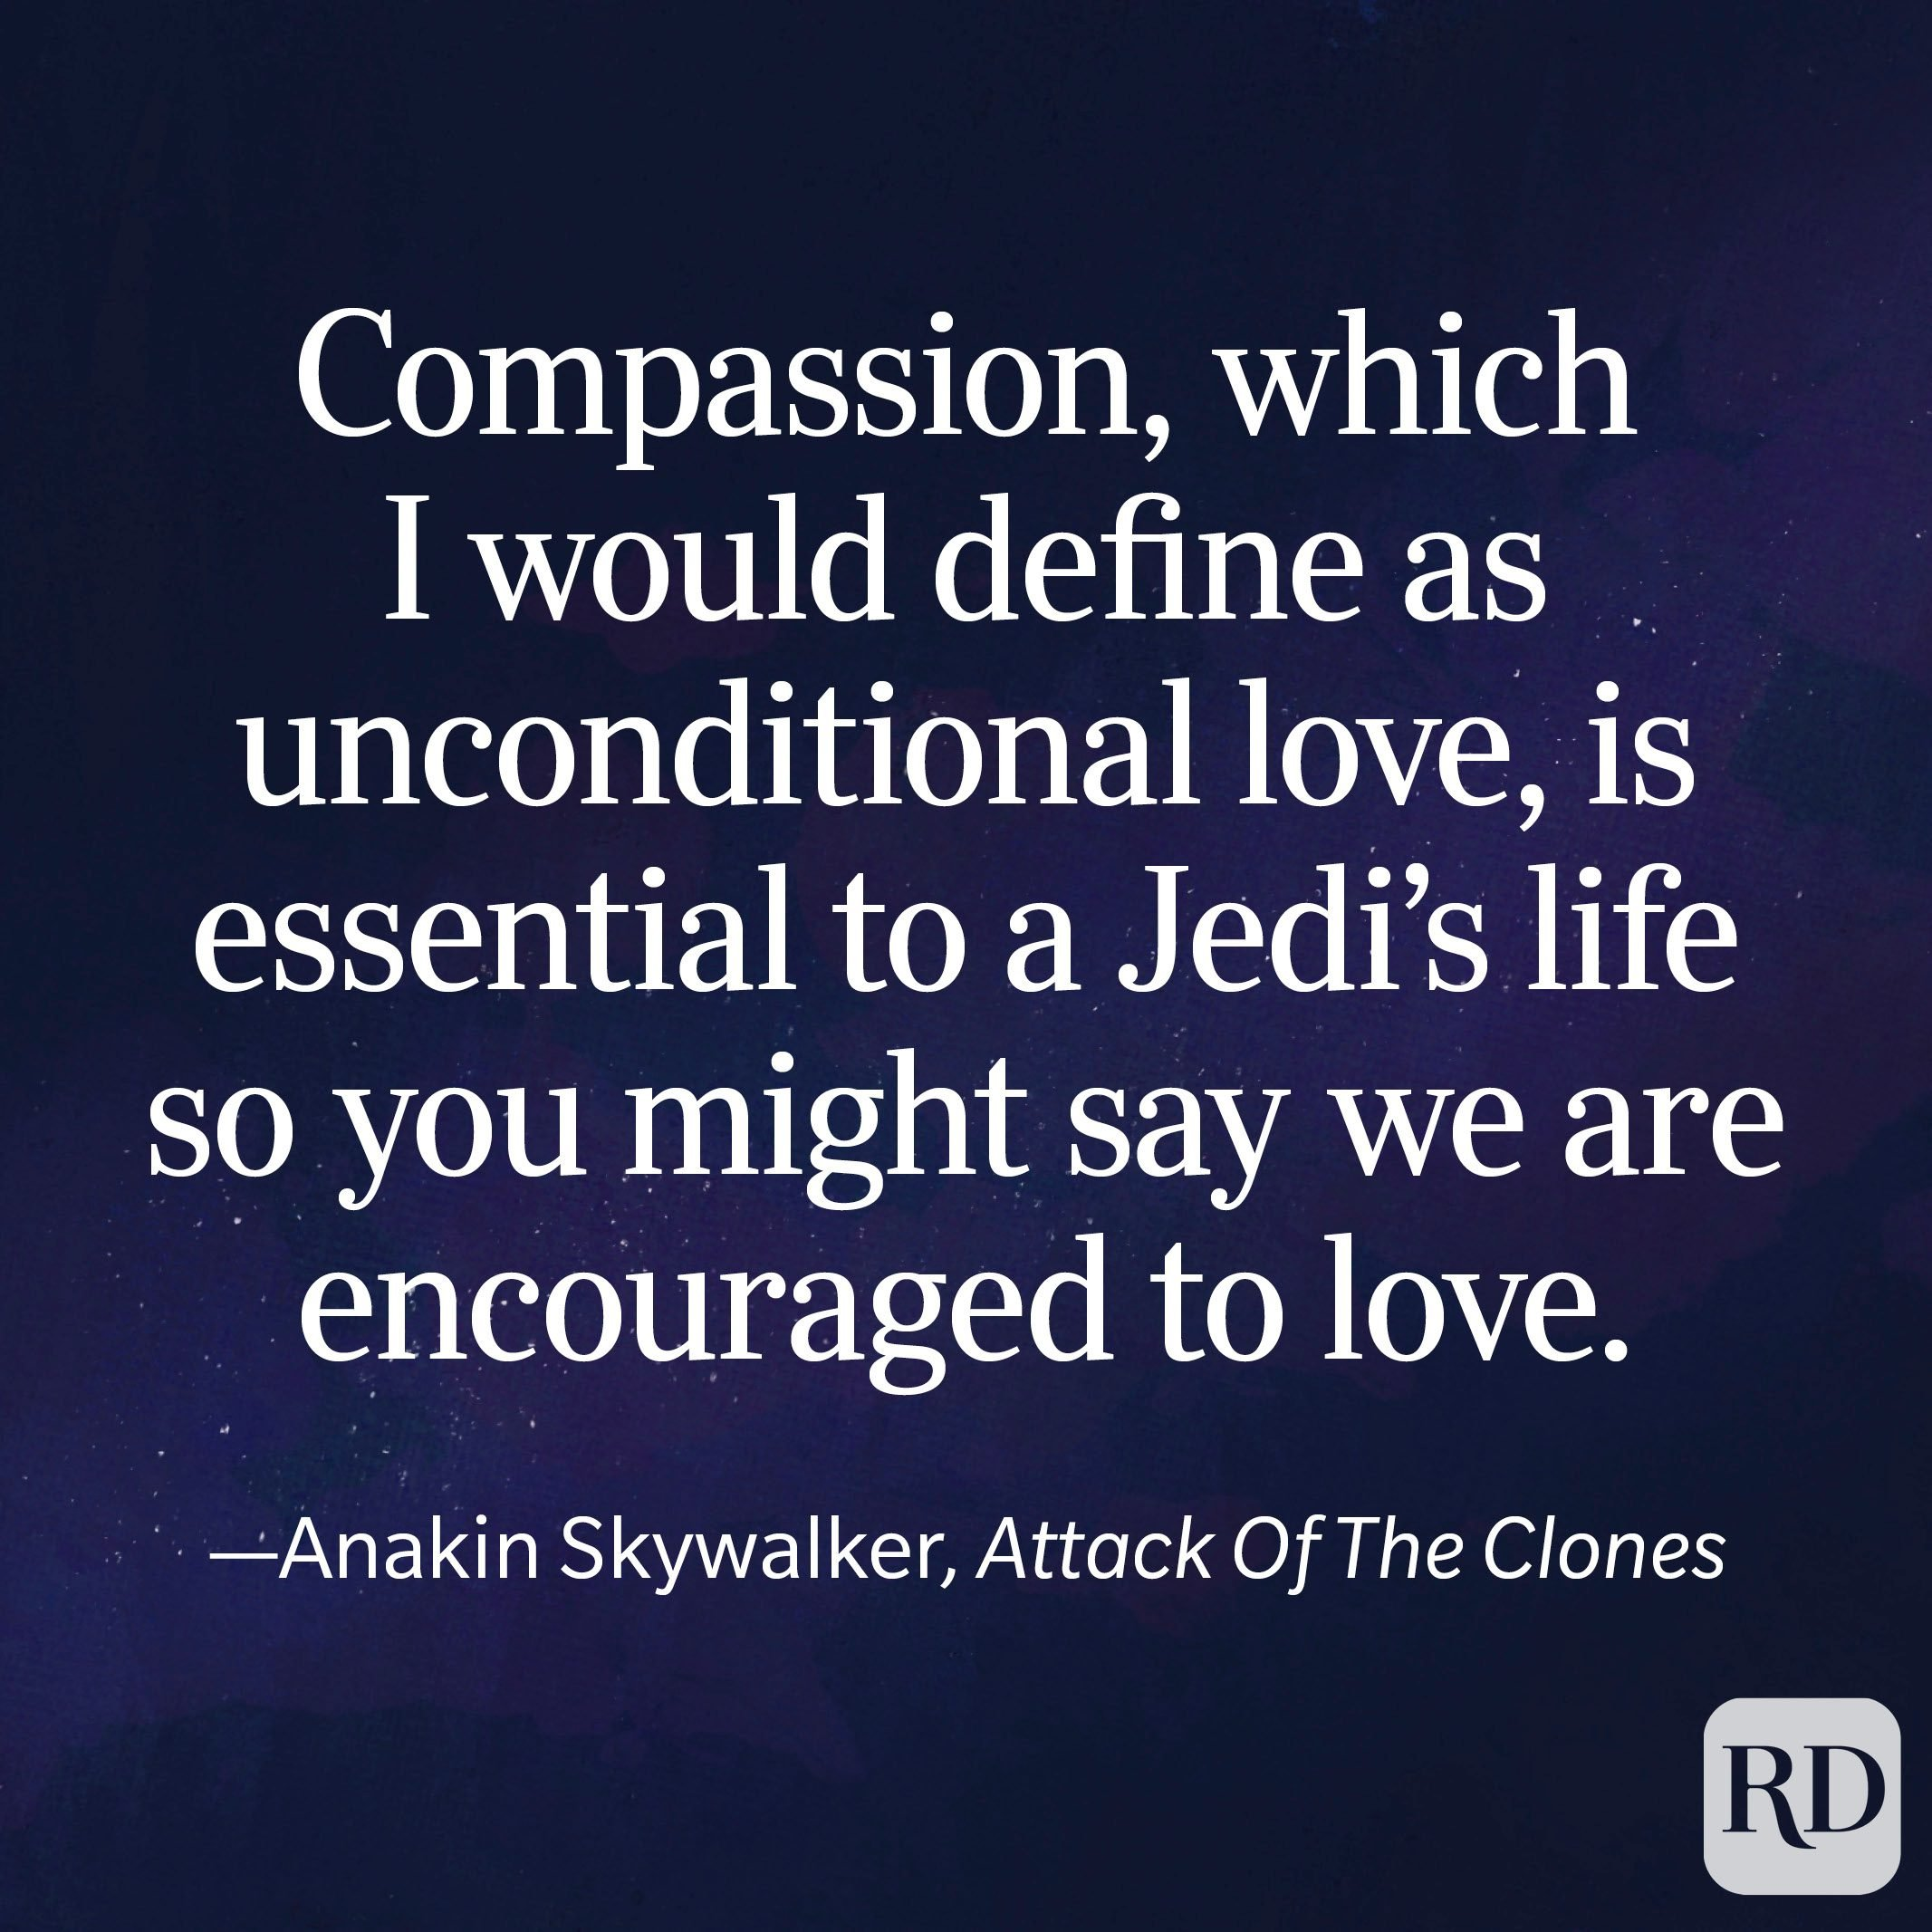 """""""Compassion, which I would define as unconditional love, is essential to a Jedi's life so you might say we are encouraged to love."""" —Anakin Skywalker, Attack Of The Clones"""